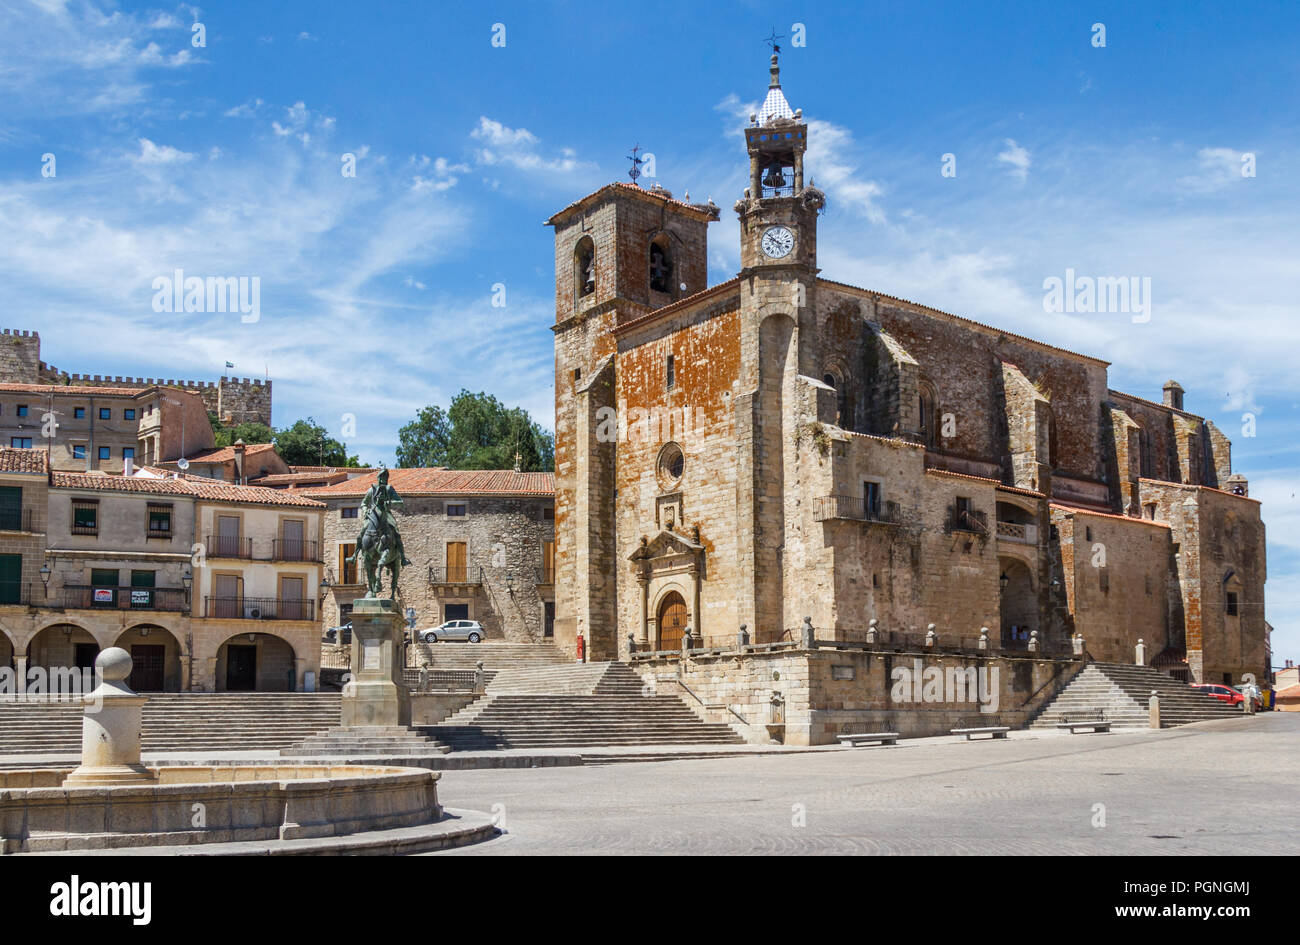 Statue of Francisco Pizzaro on horse and the Roman Catholic church of San Martin, Trujillo, Spain - Stock Image